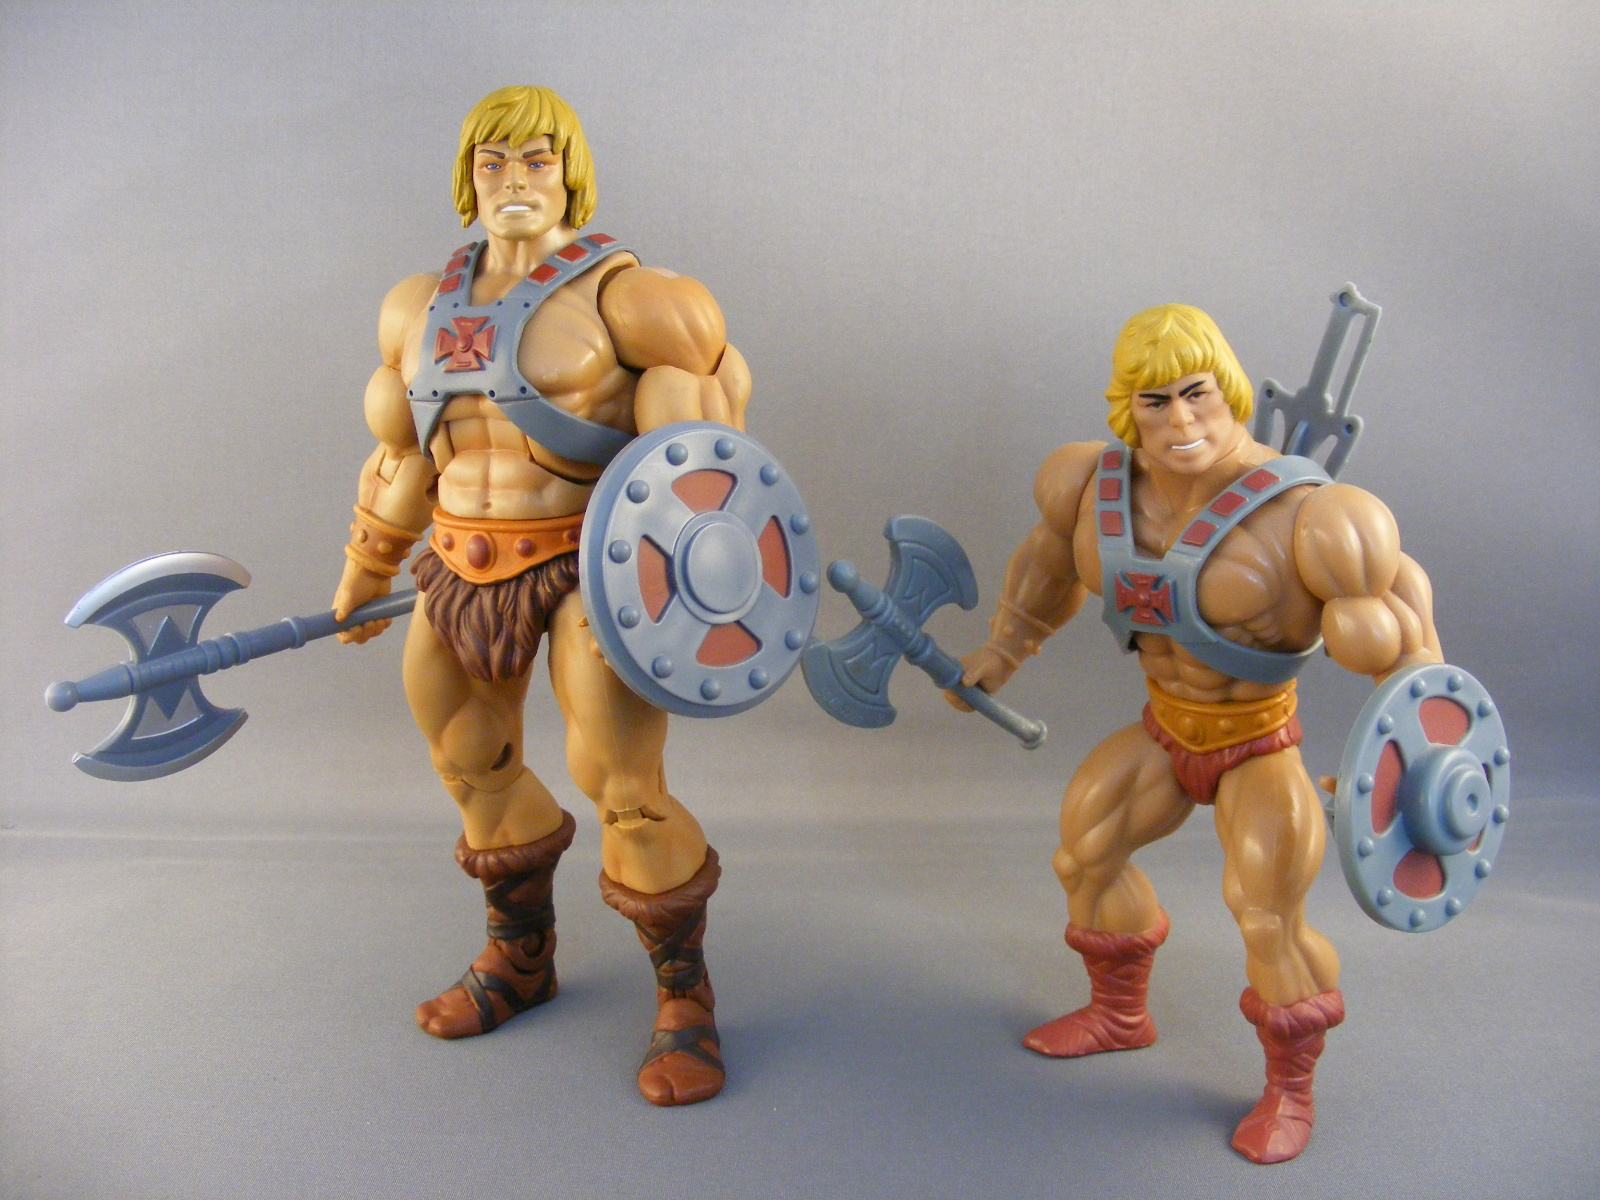 Masters Of The Universe Toys : He man masters of the universe classics poeghostal